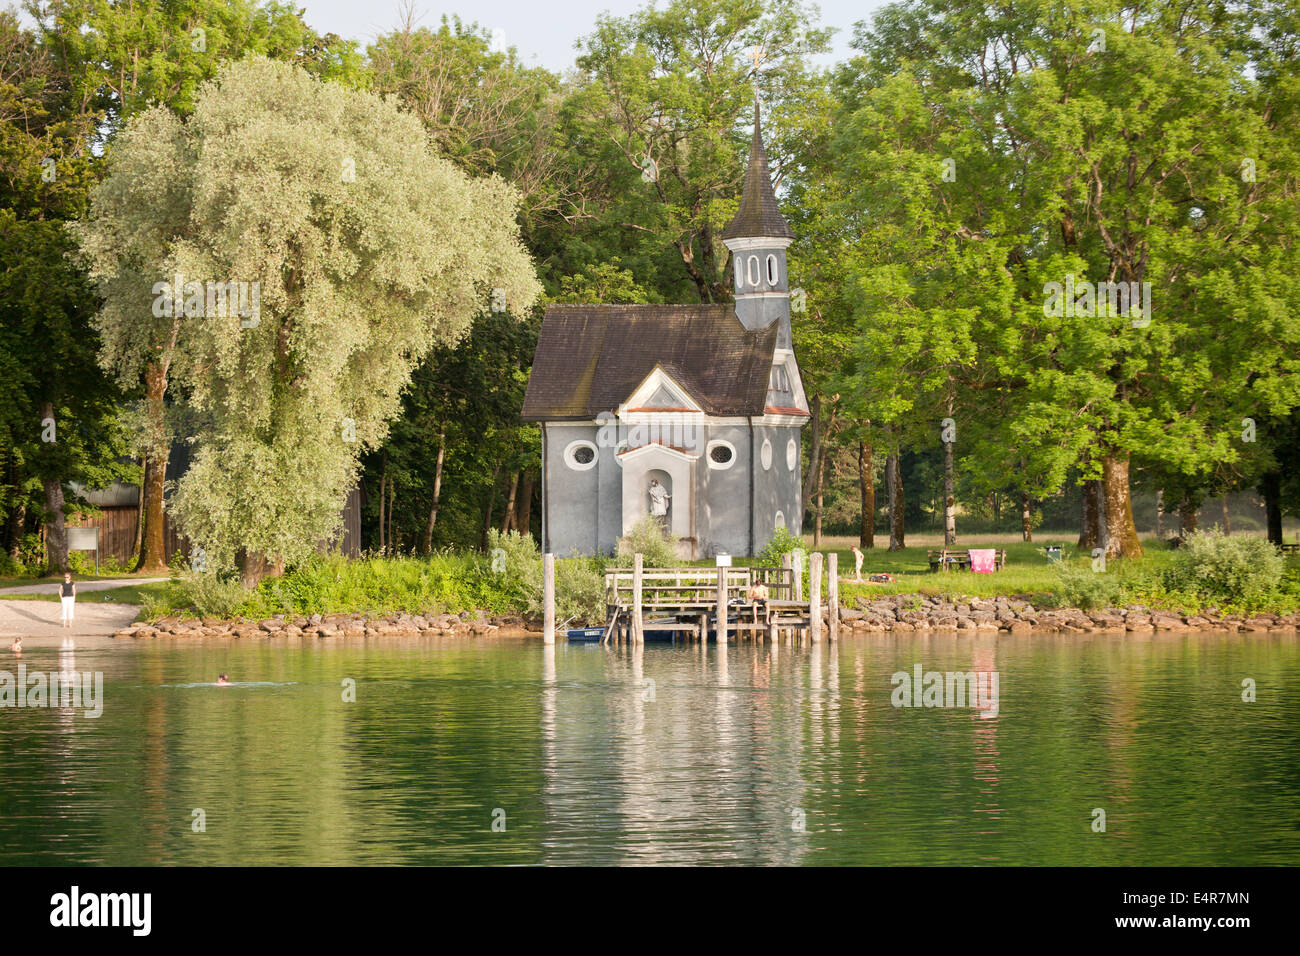 Lakeside Chapel of the Holy Cross on the island Herreninsel in lake Chiemsee, Chiemgau, Bavaria, Germany, Europe - Stock Image